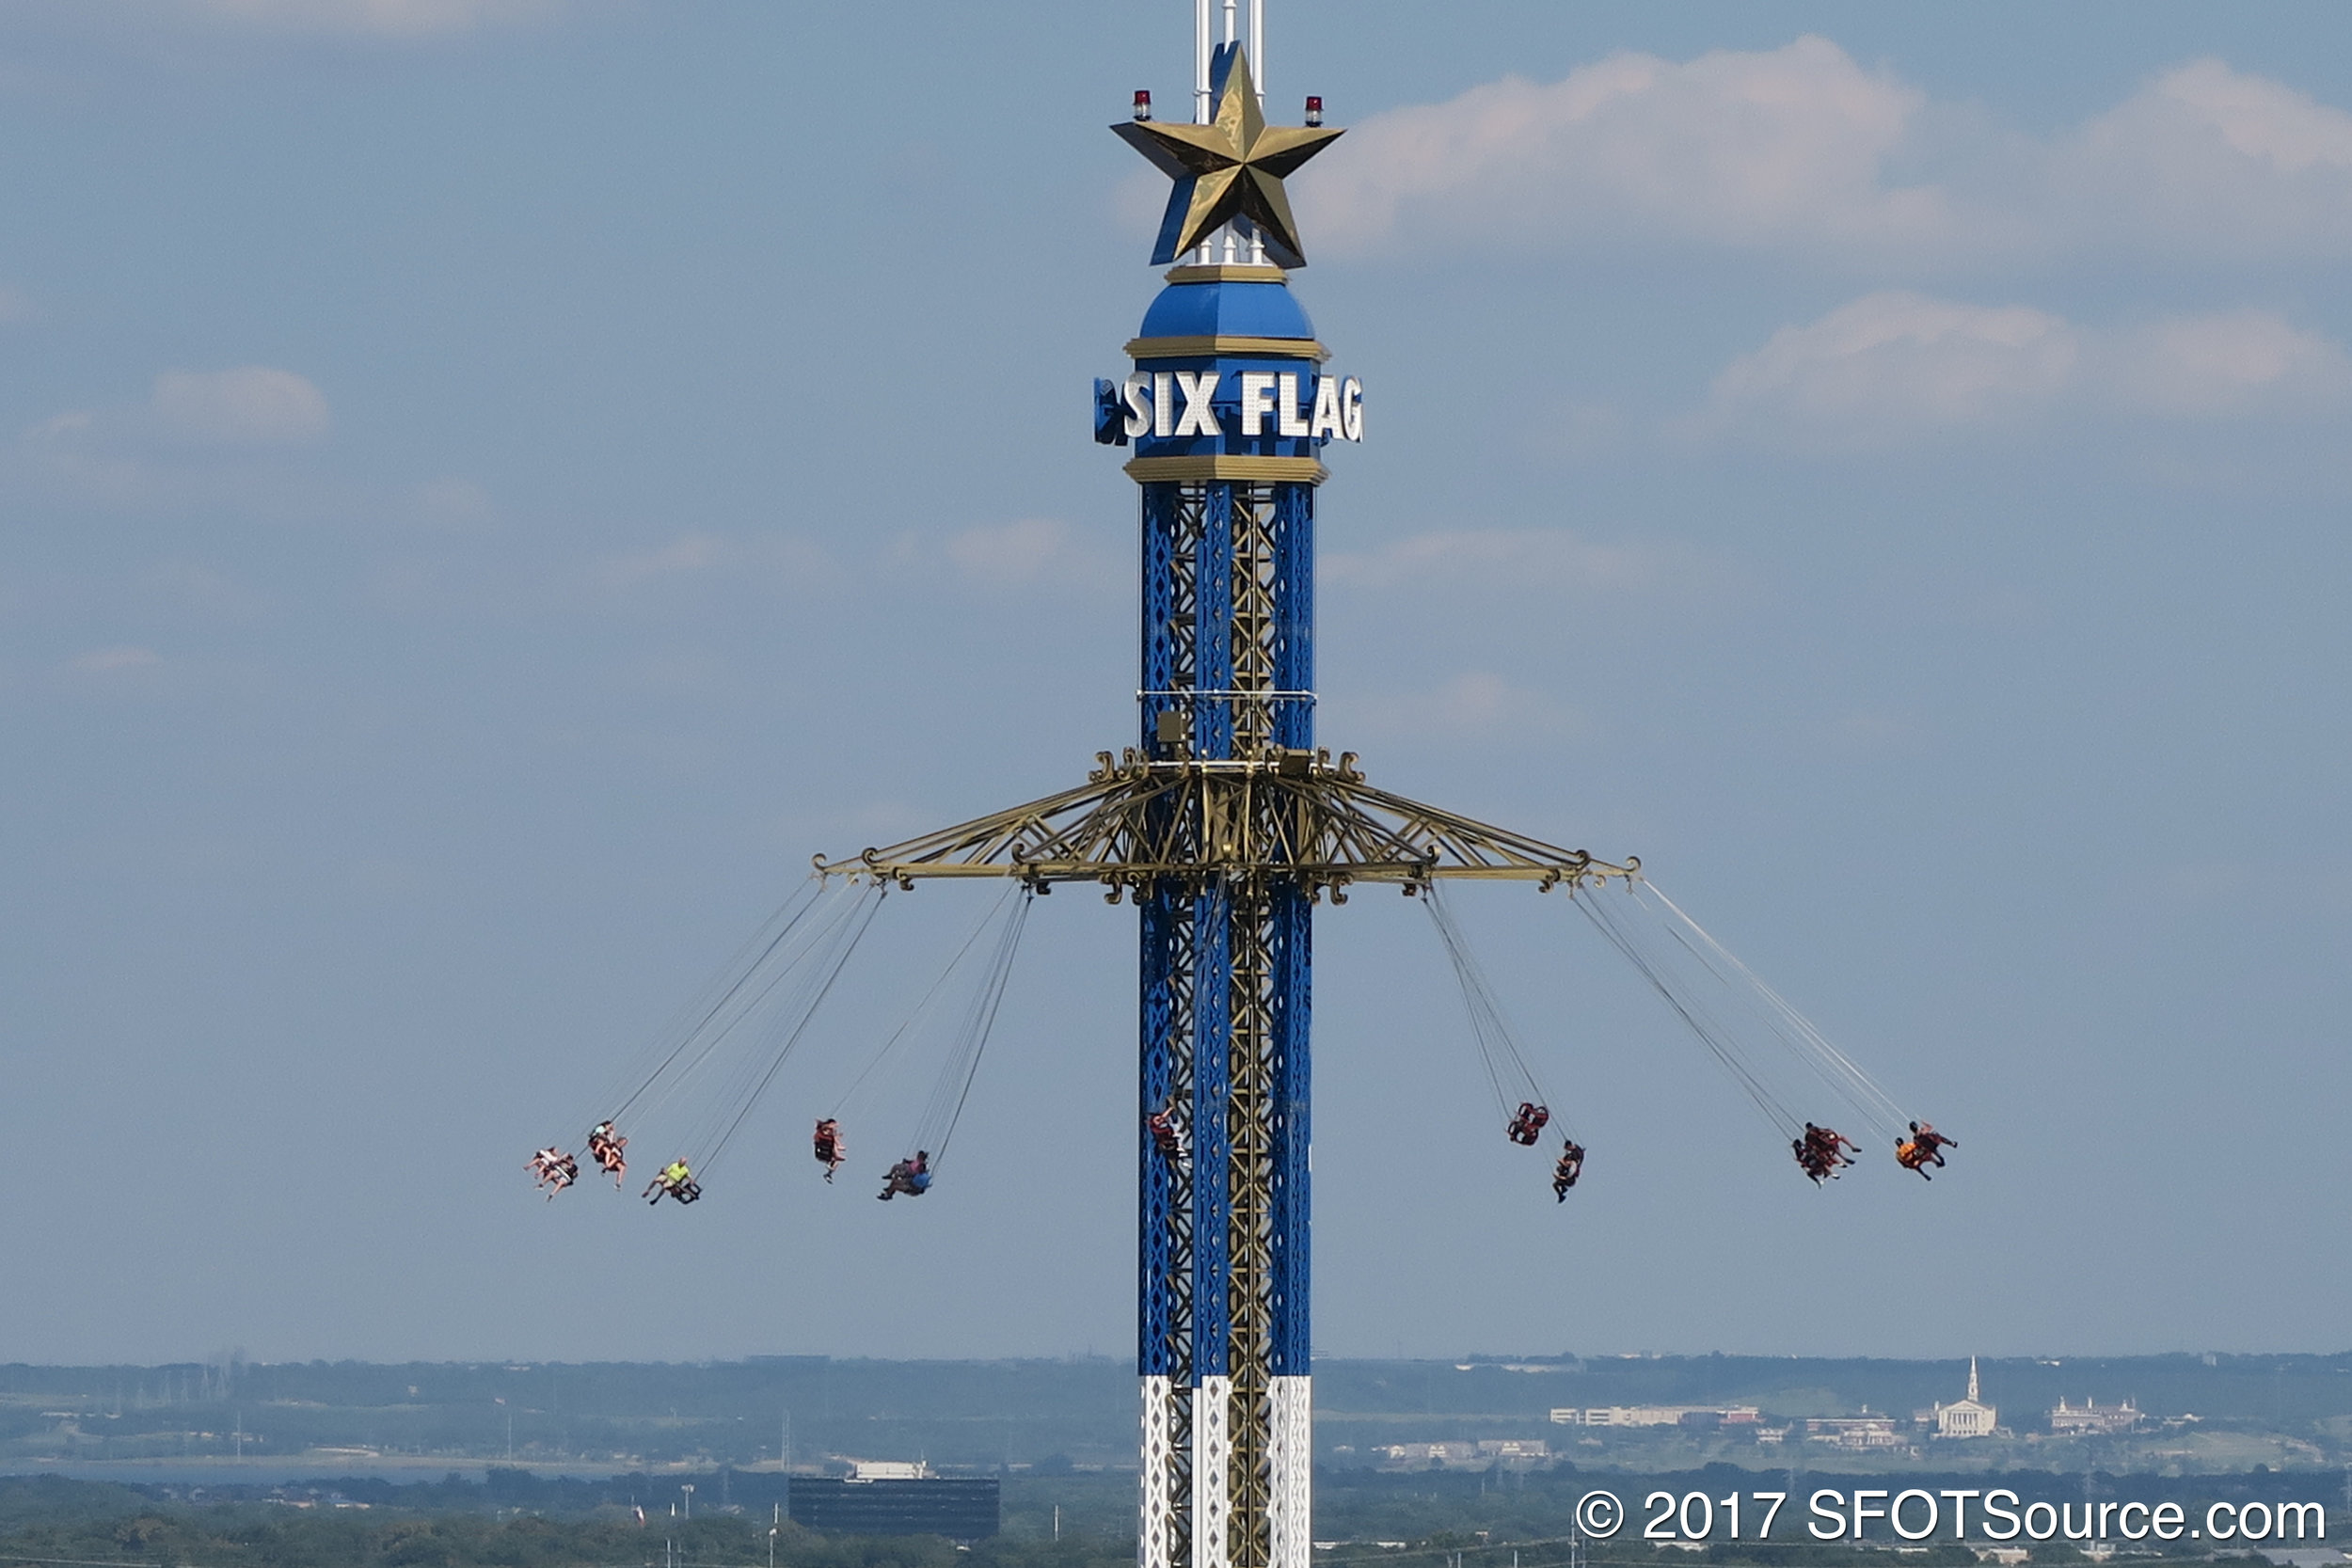 A look at Texas SkyScreamer from Oil Derrick.